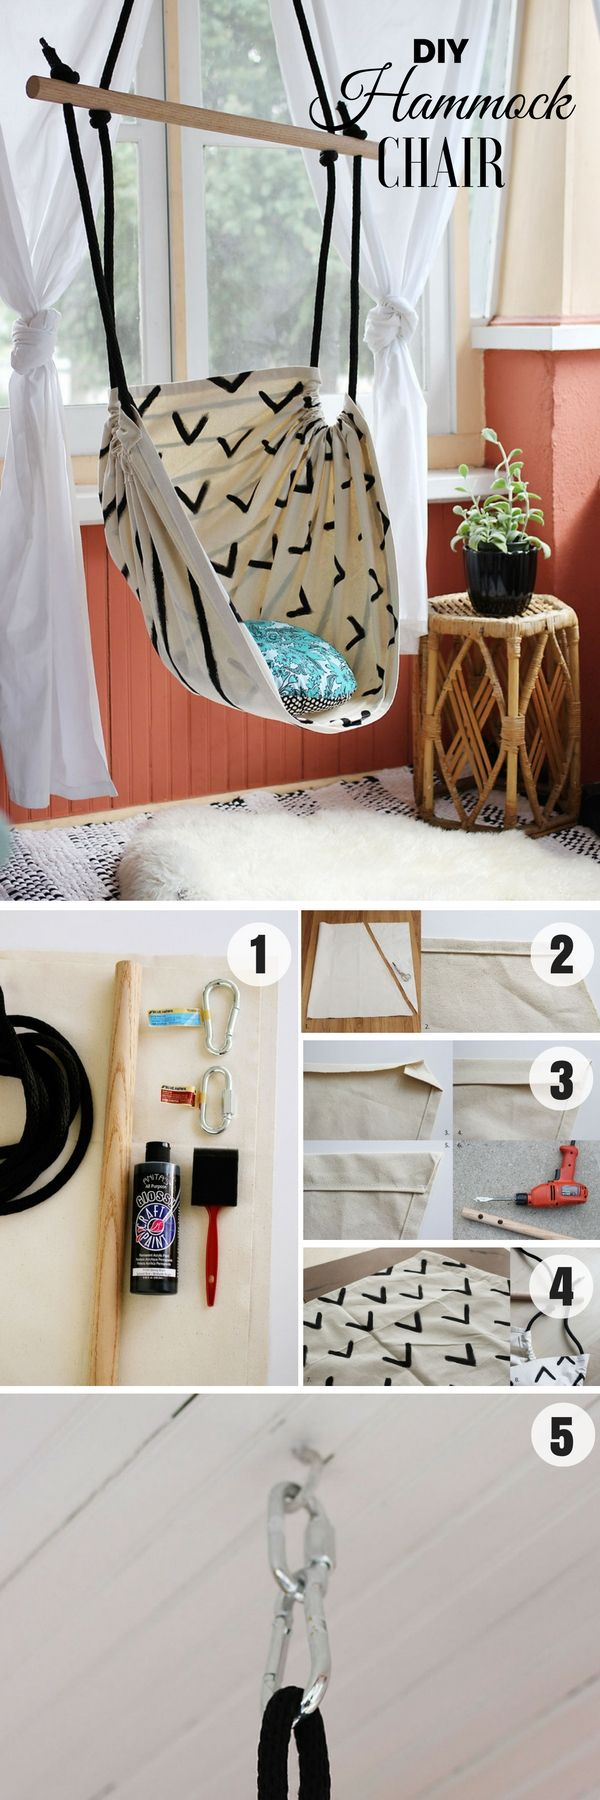 Homemade Bedroom Decor Best 25 Easy Diy Room Decor Ideas On Pinterest  Diy For Teens .